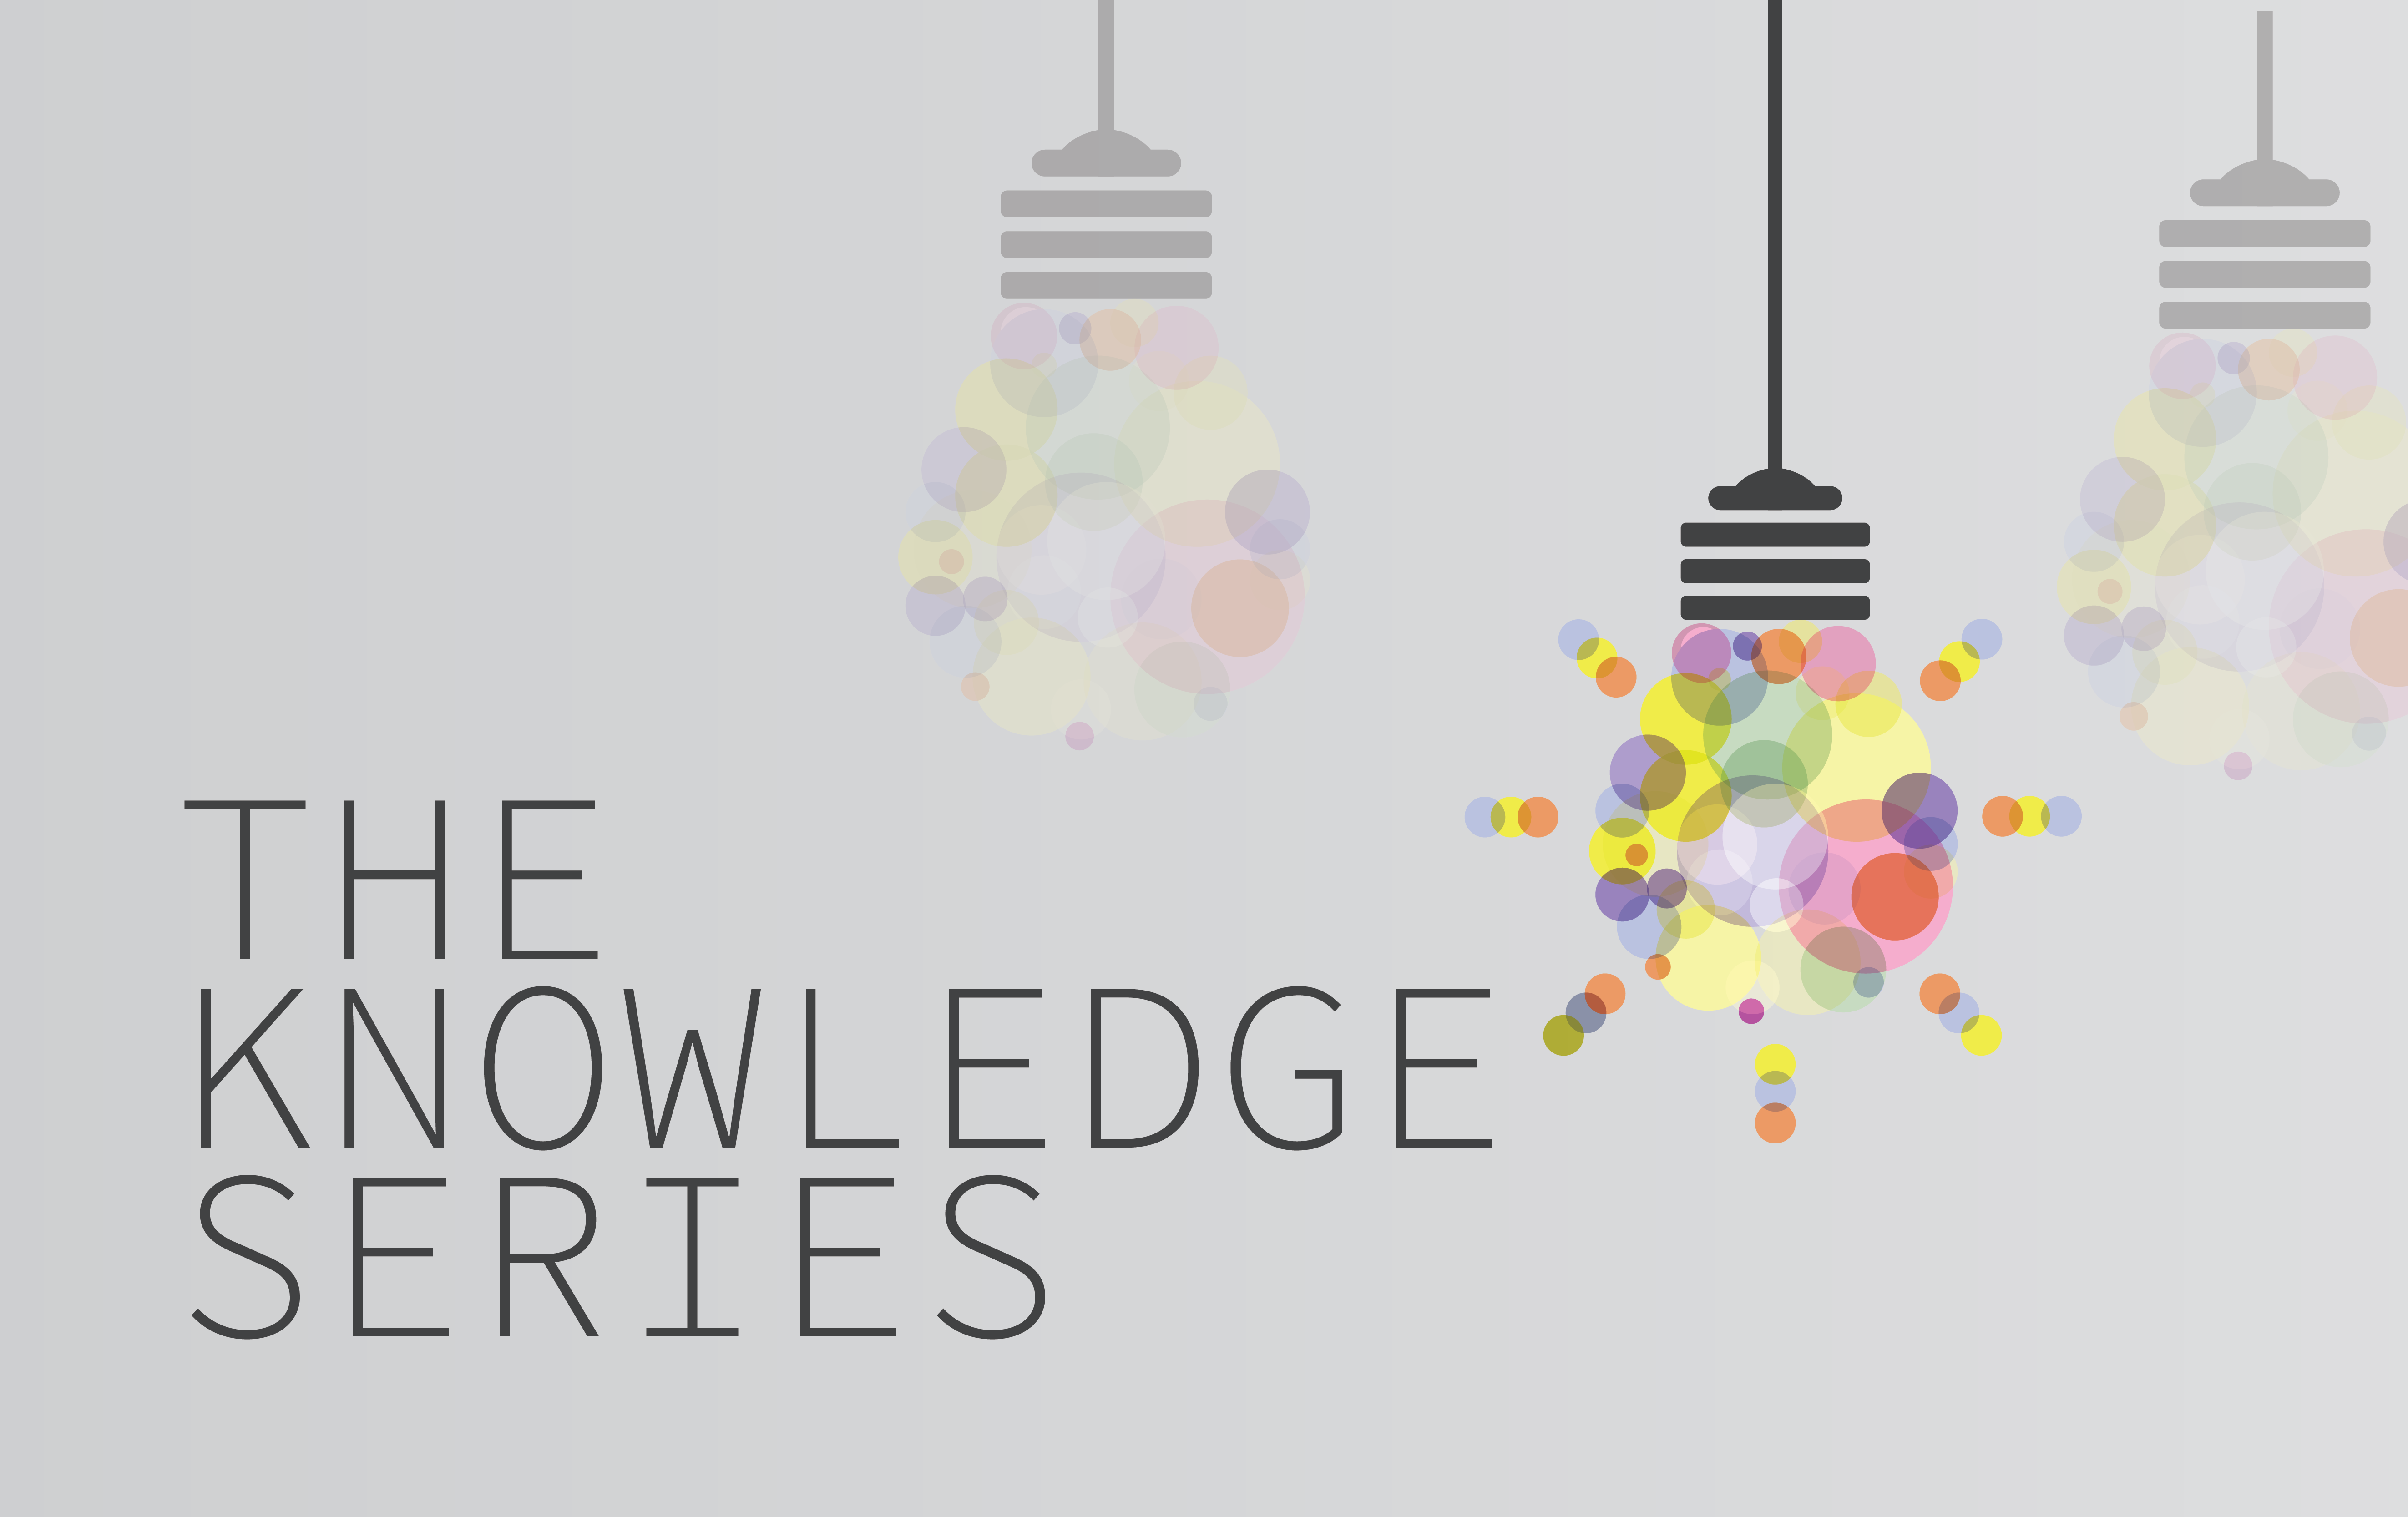 A Glance of the Knowledge Series